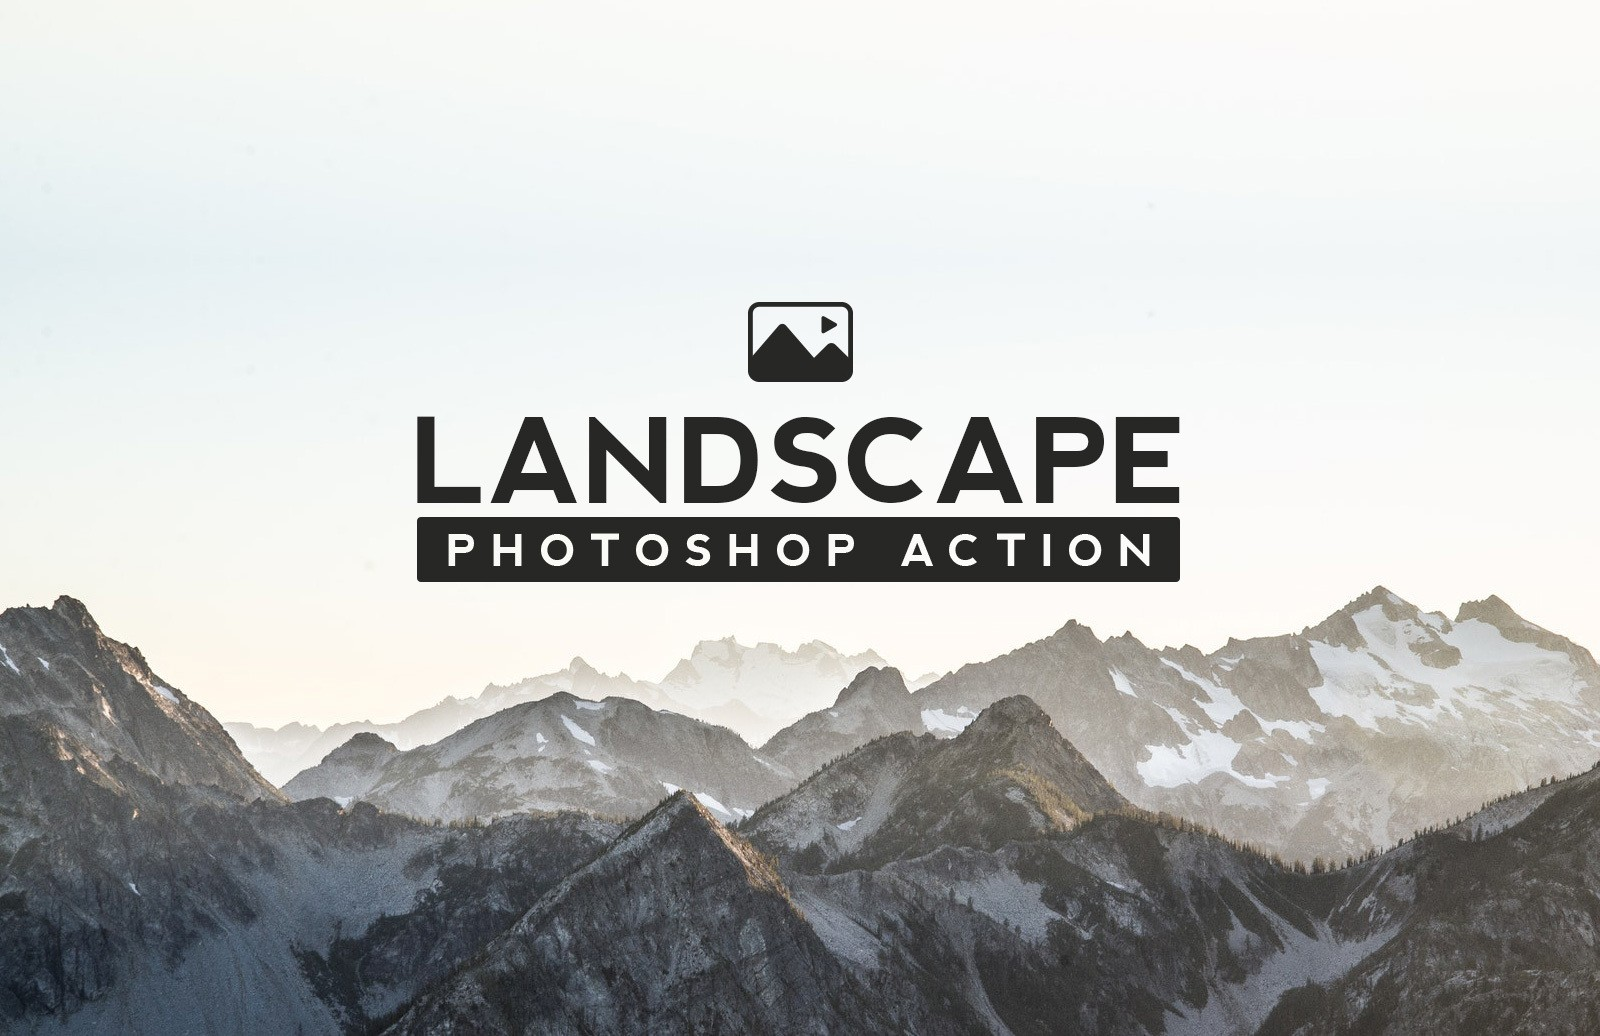 Landscape Photoshop Action 1